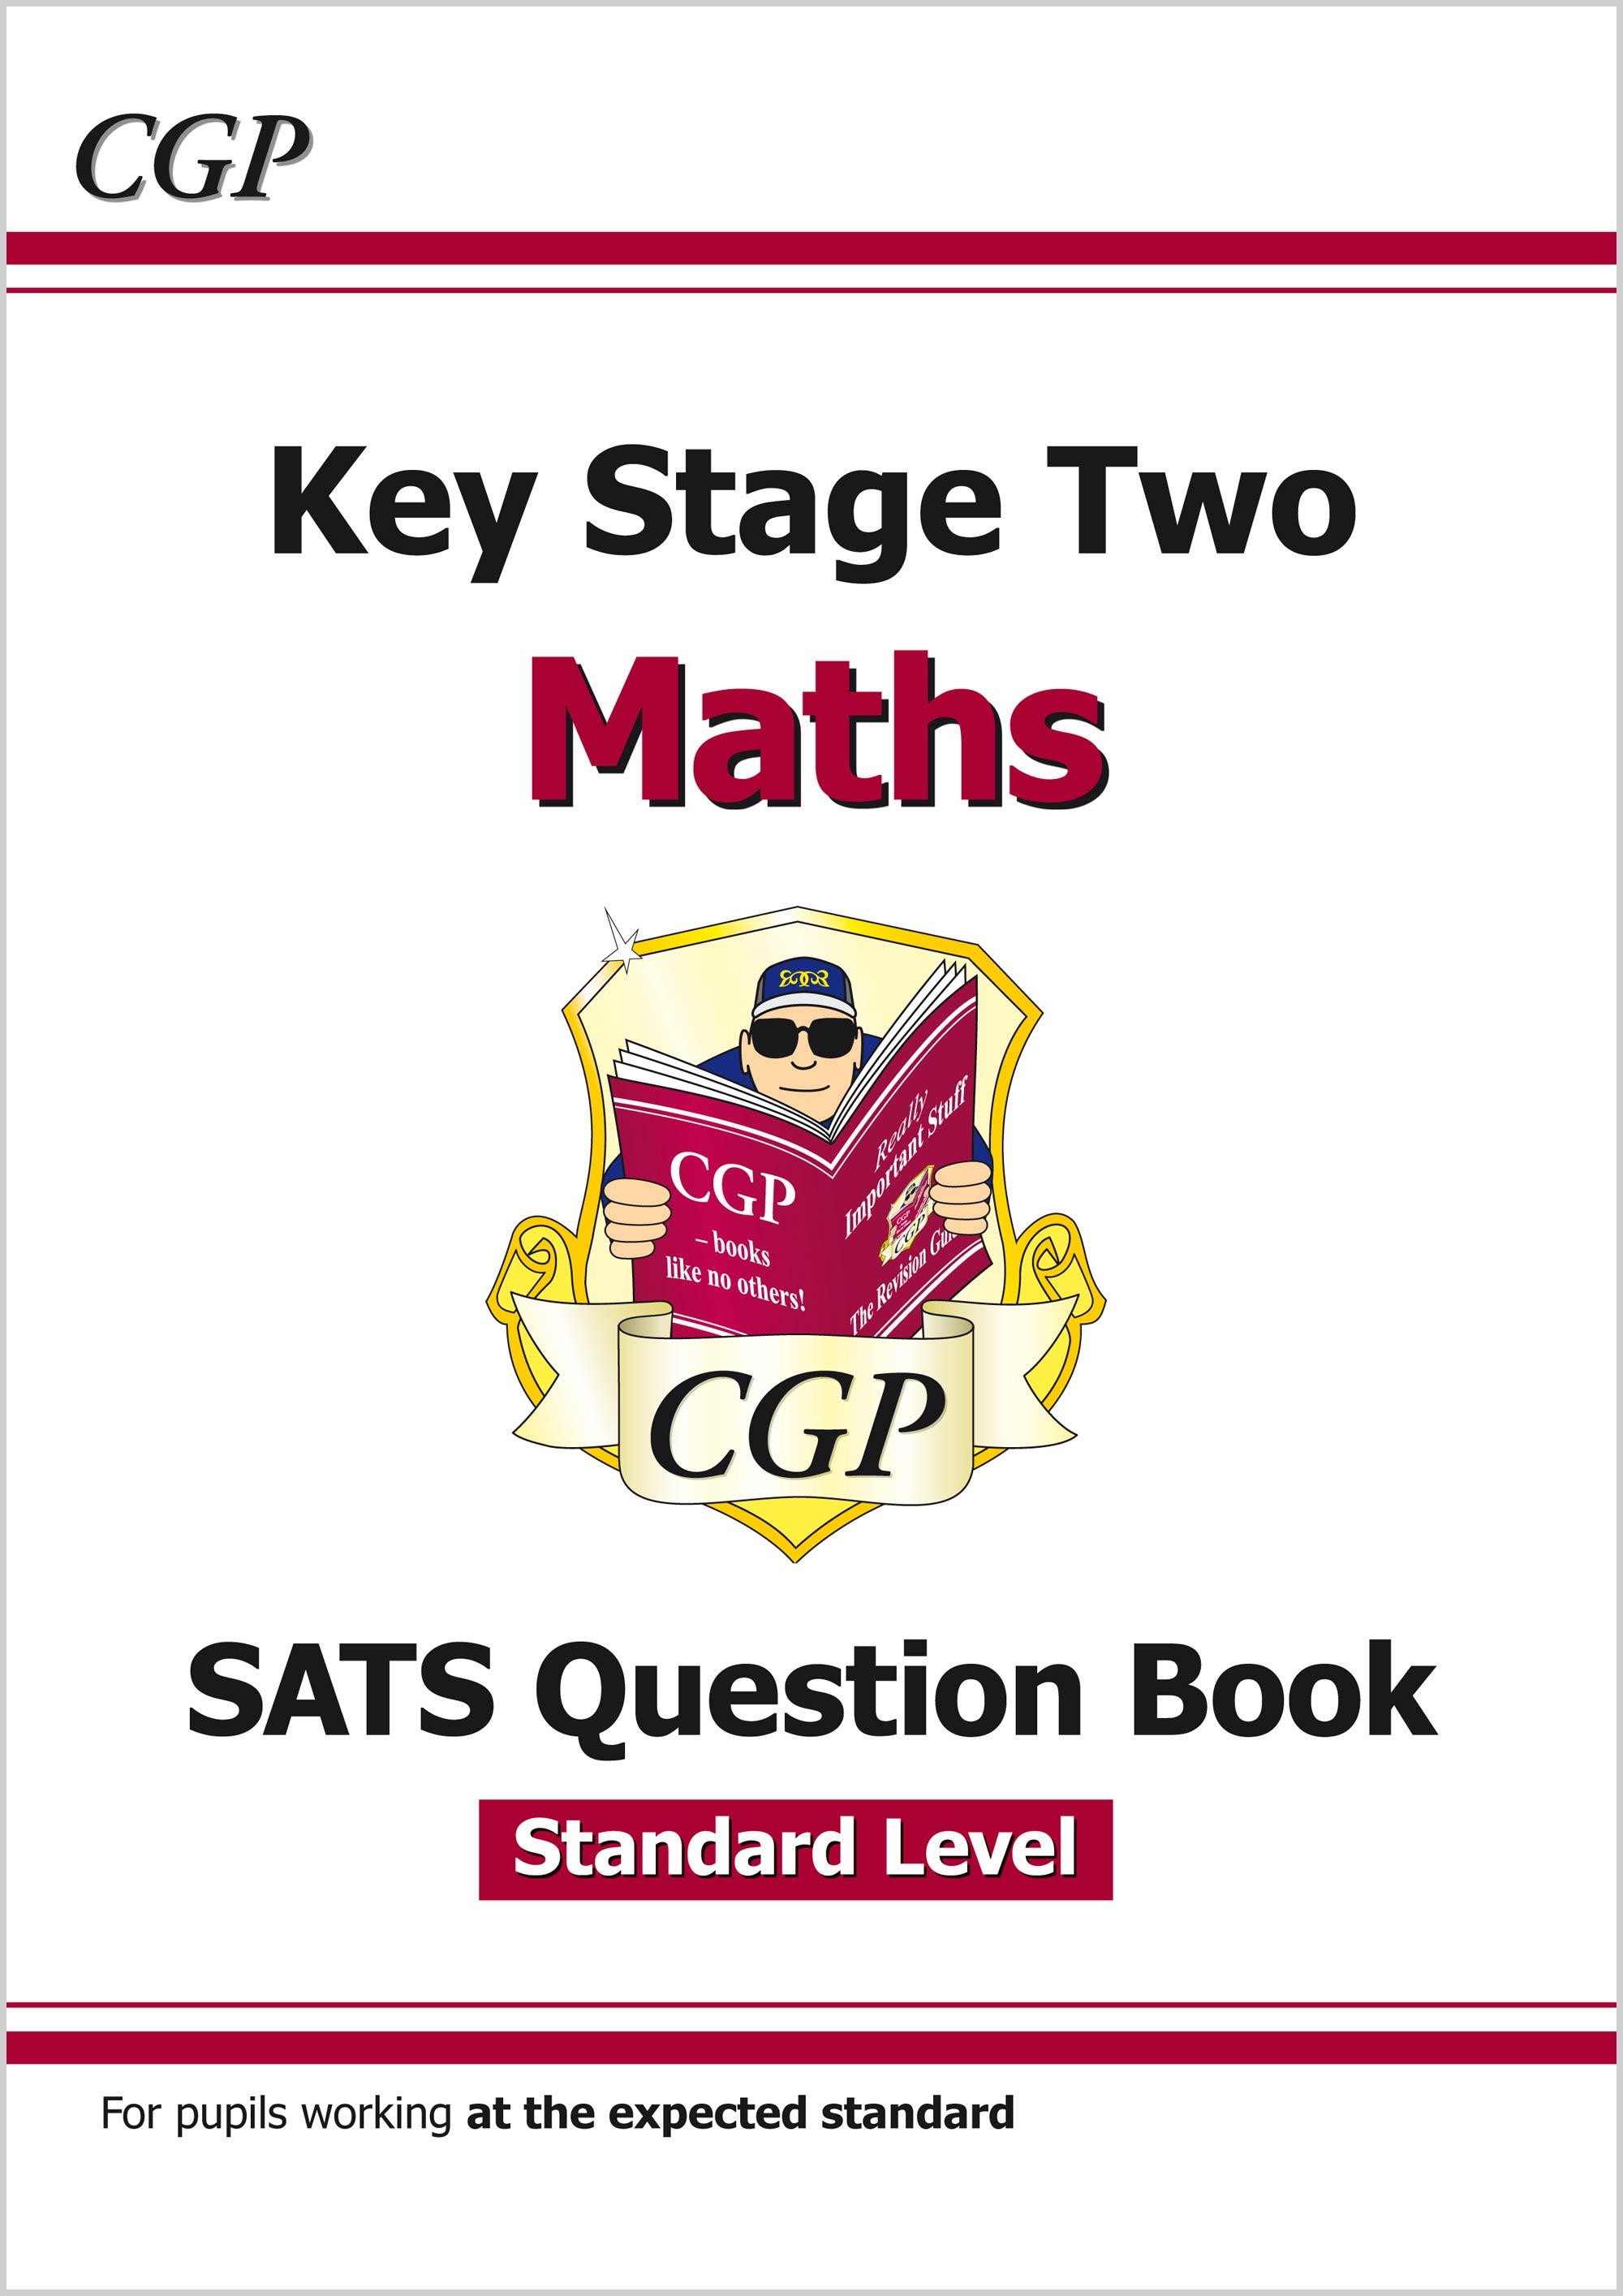 MLFW22 - KS2 Maths Targeted SATS Question Book - Standard Level (for the 2020 tests)